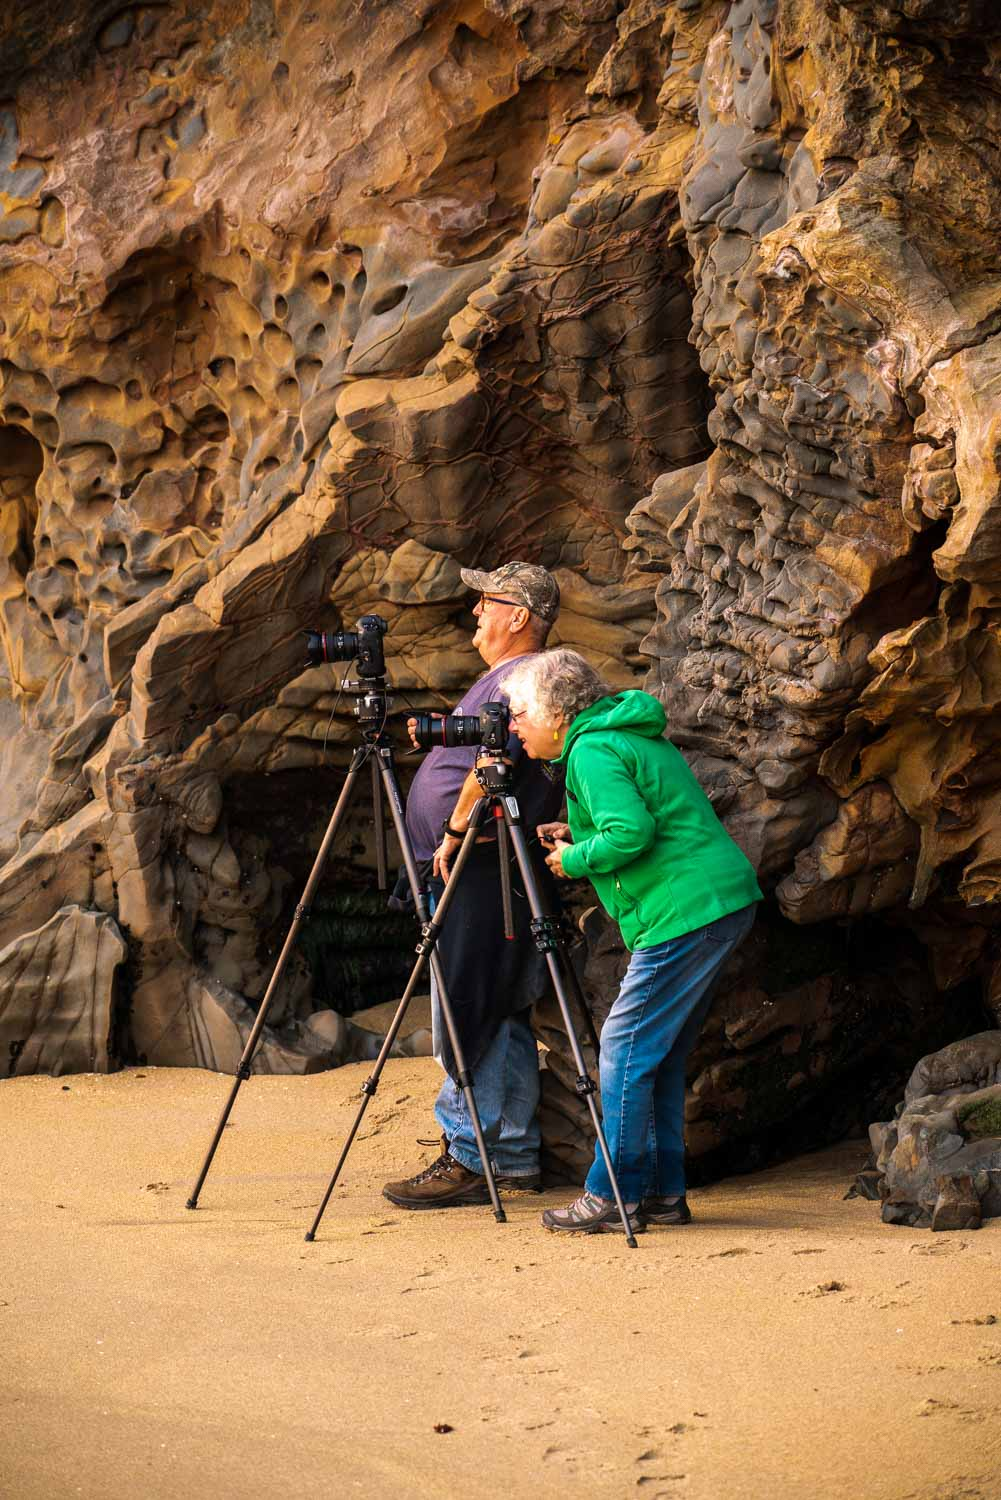 photography workshop along the California coast